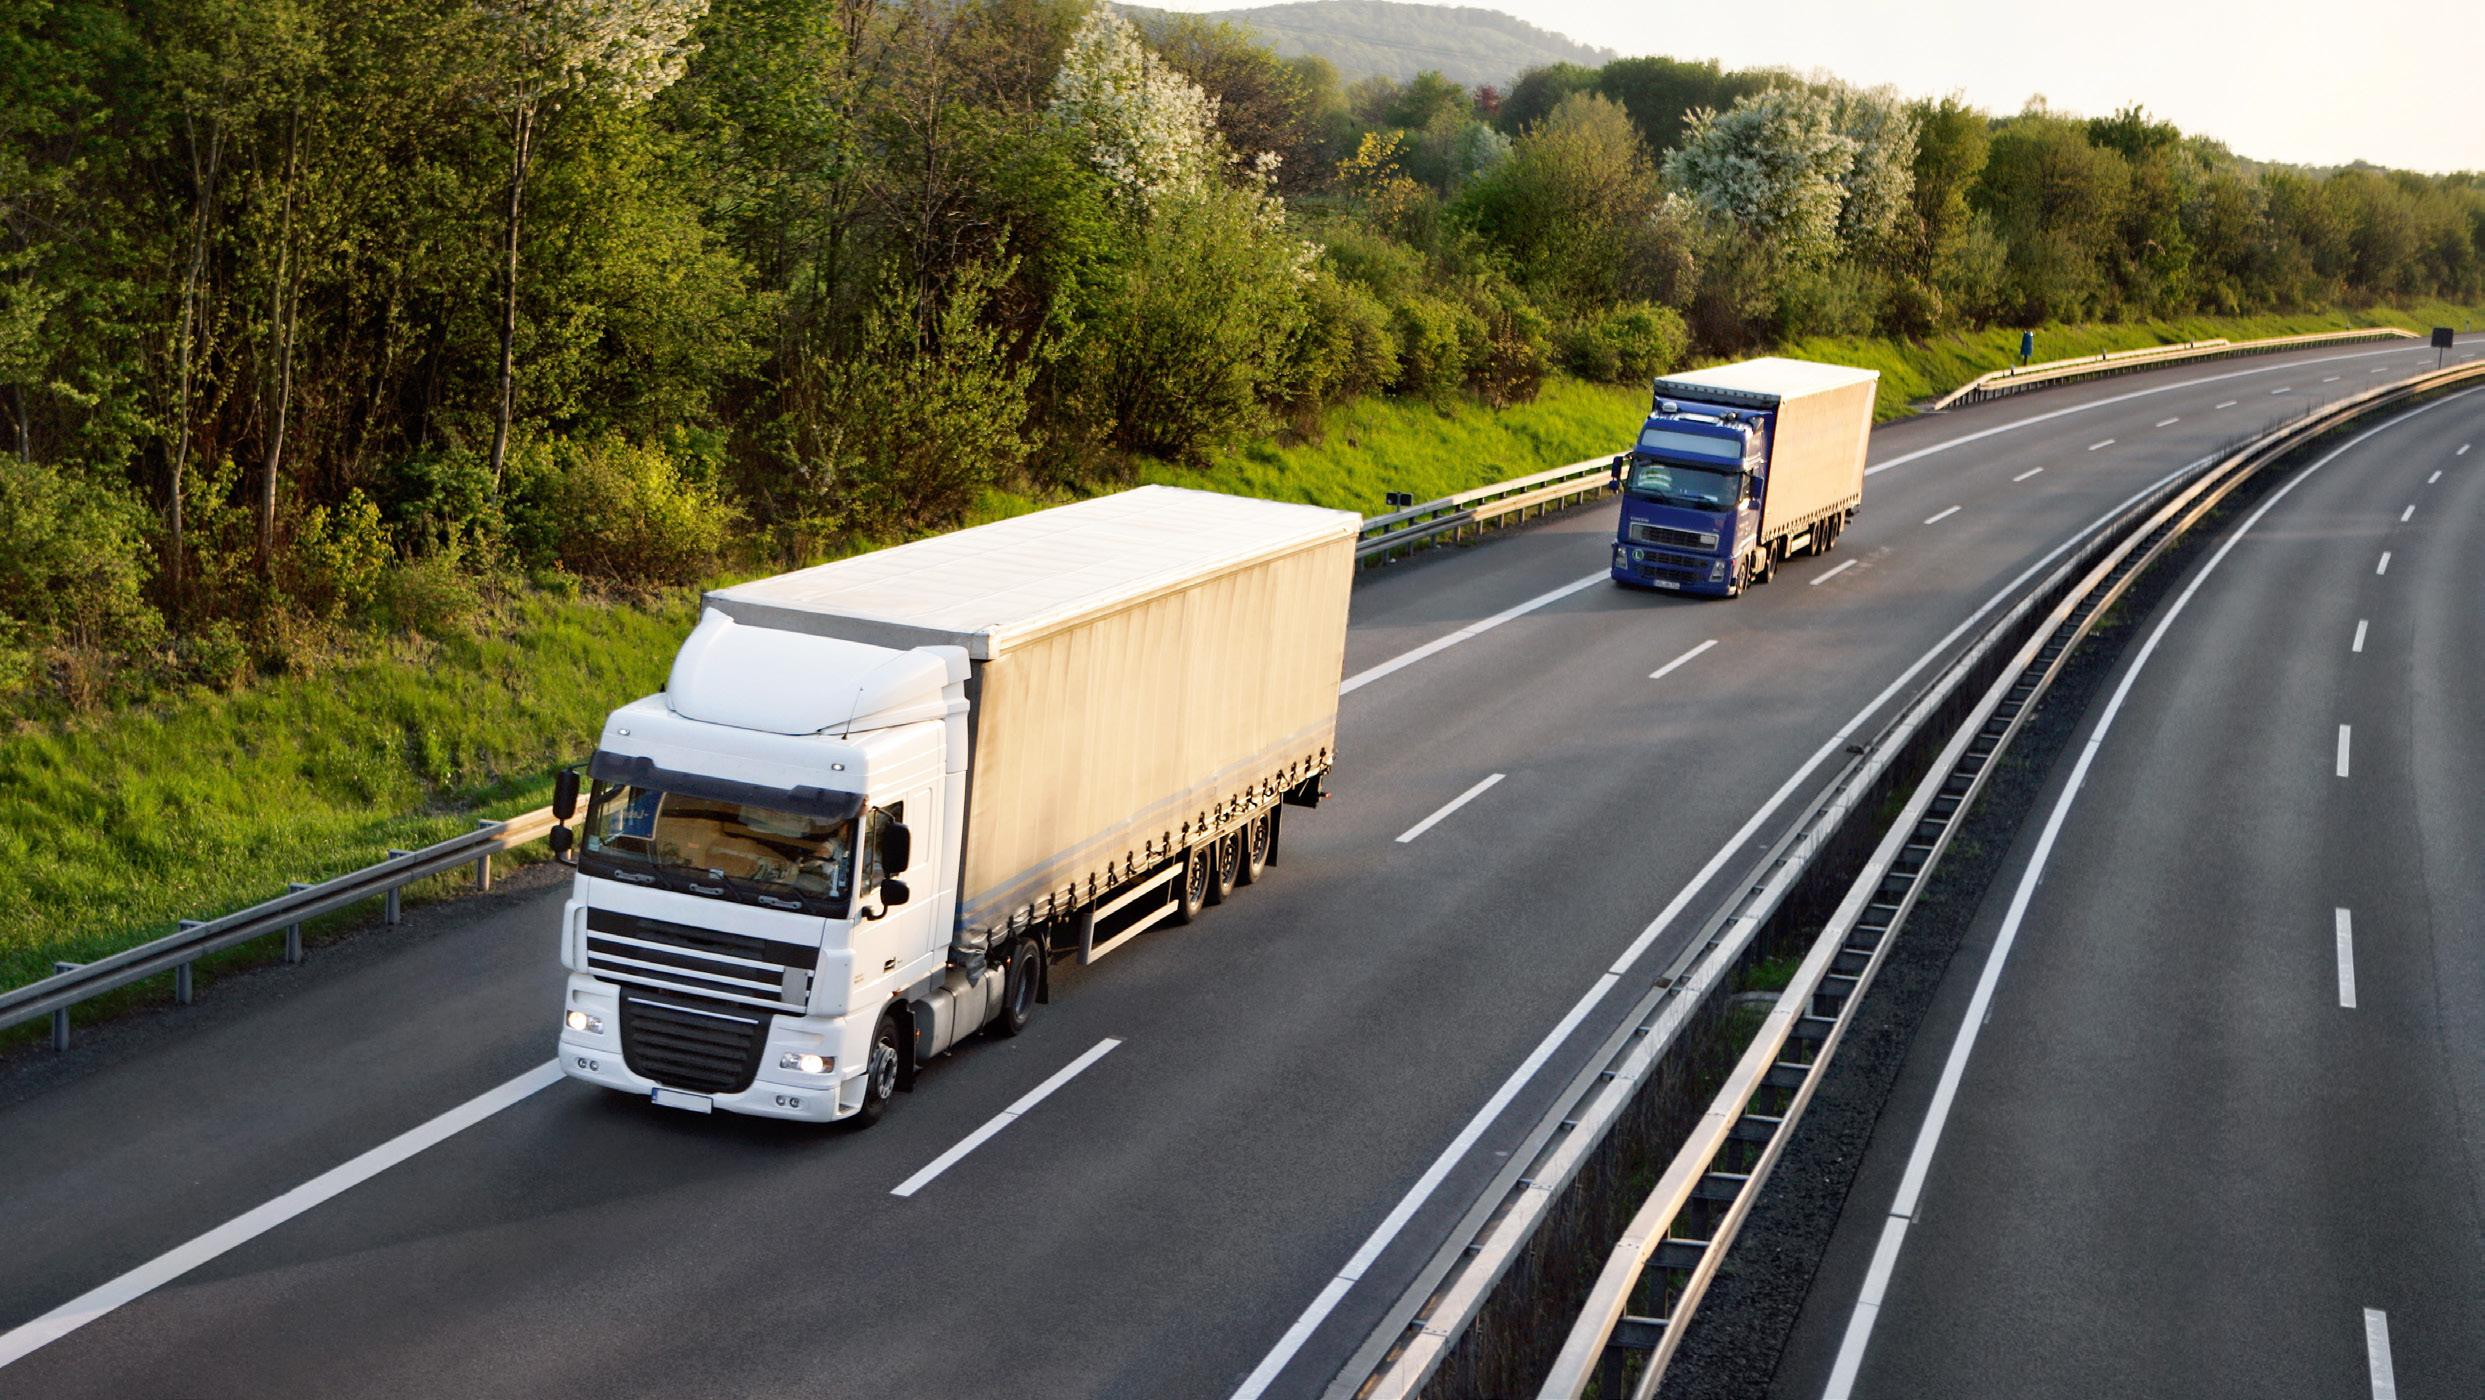 Road Haulage – Consolidation driving significant merger & acquisition demand